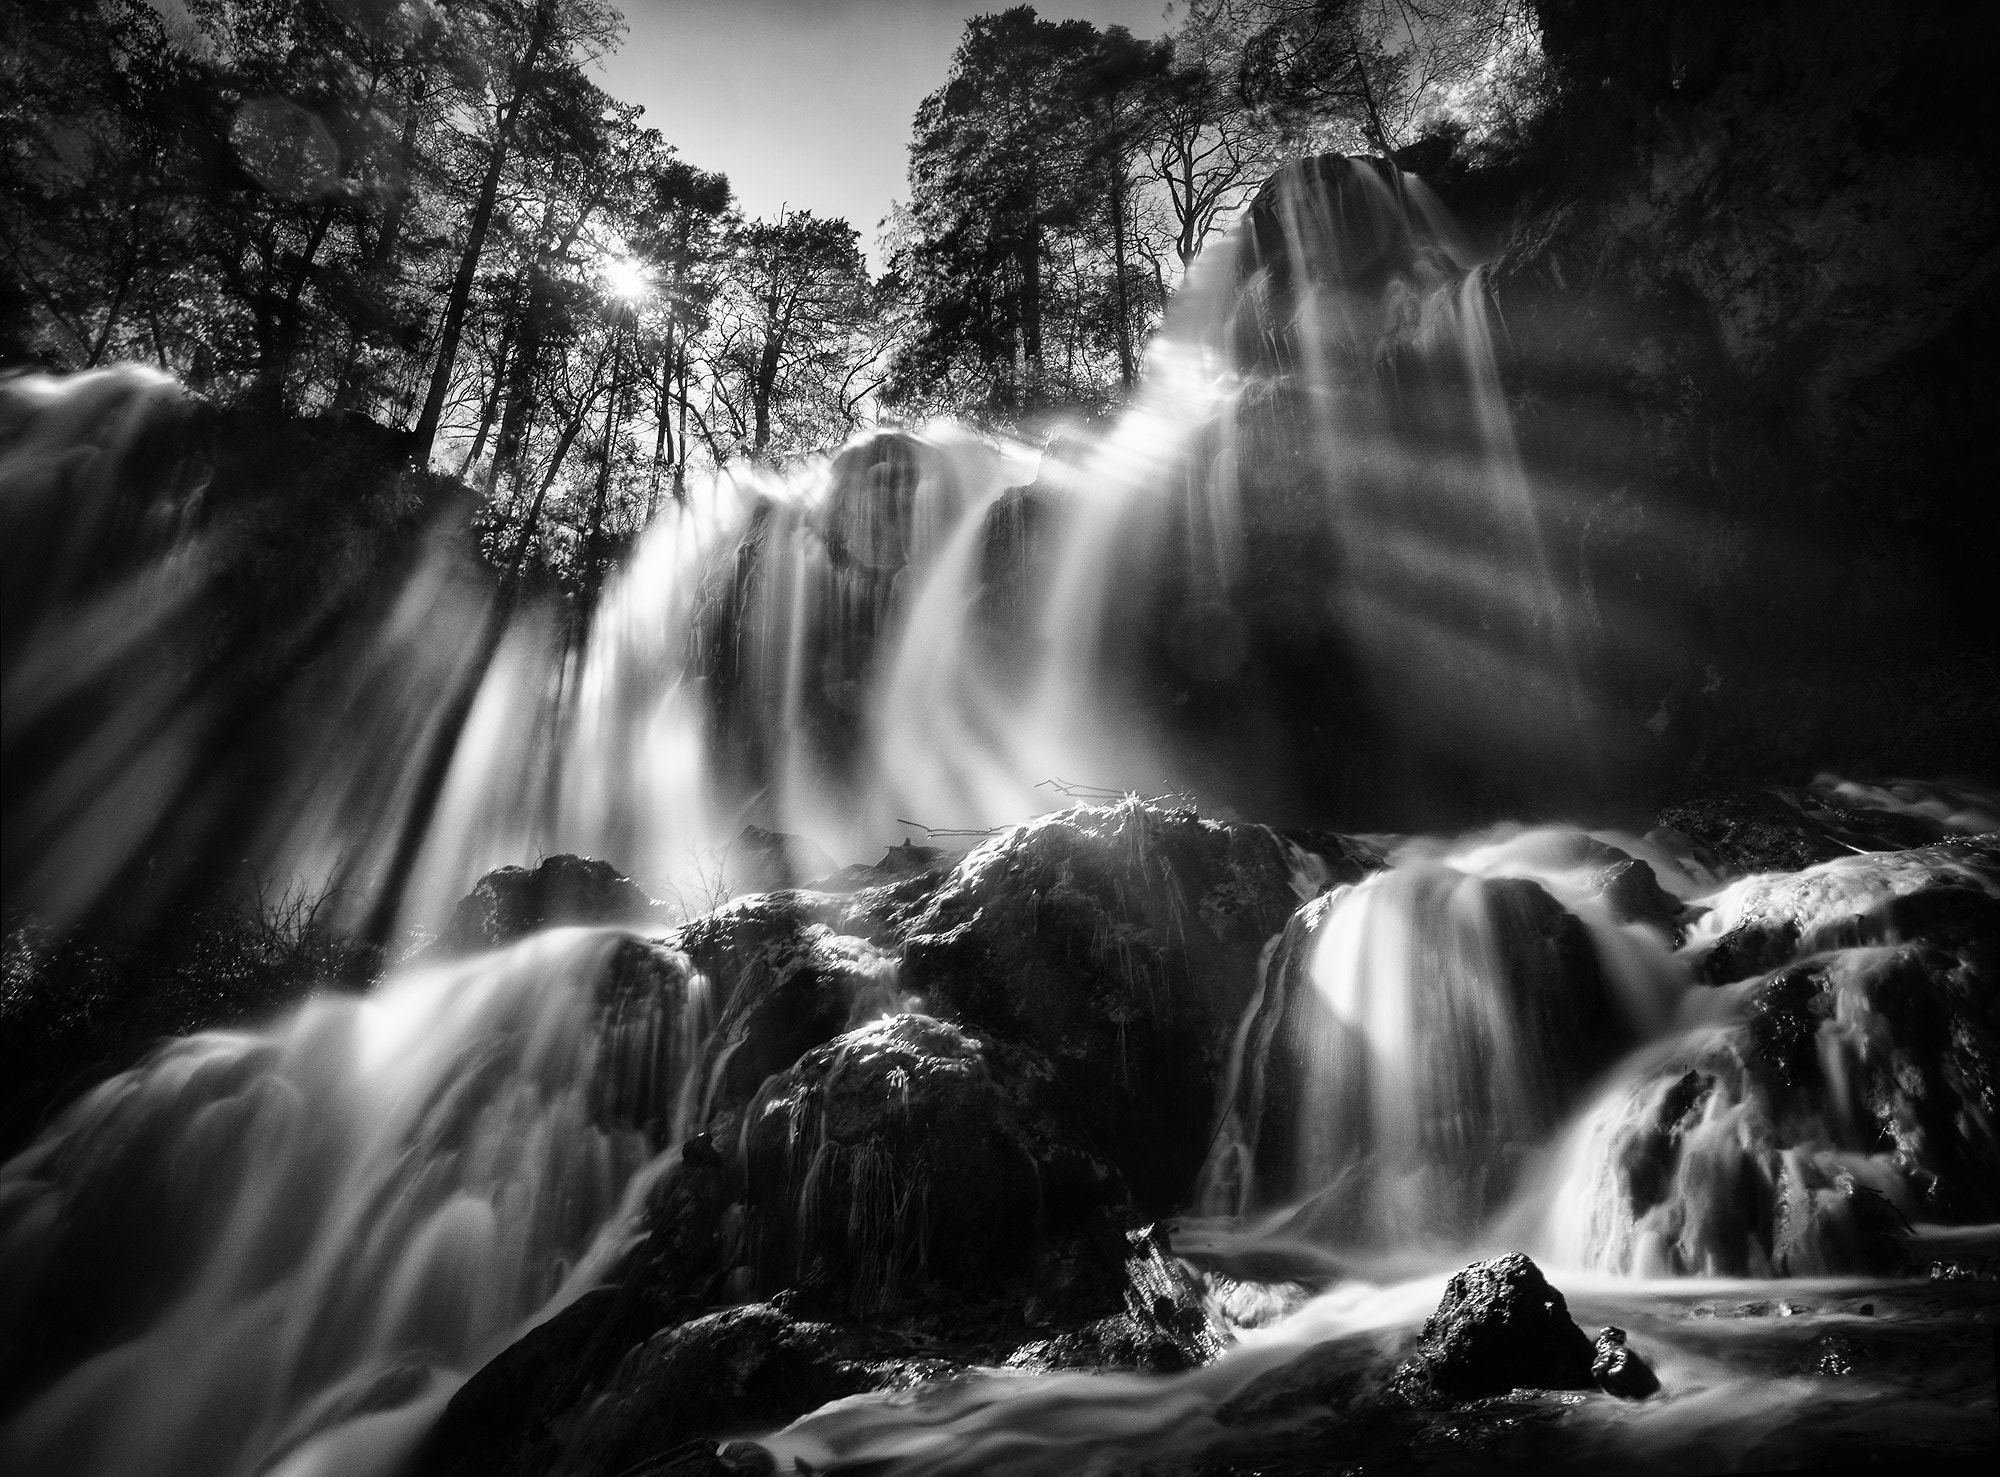 Photograph Rays of light over Panda Lake waterfall by Sergey Kuznetsov on 500px